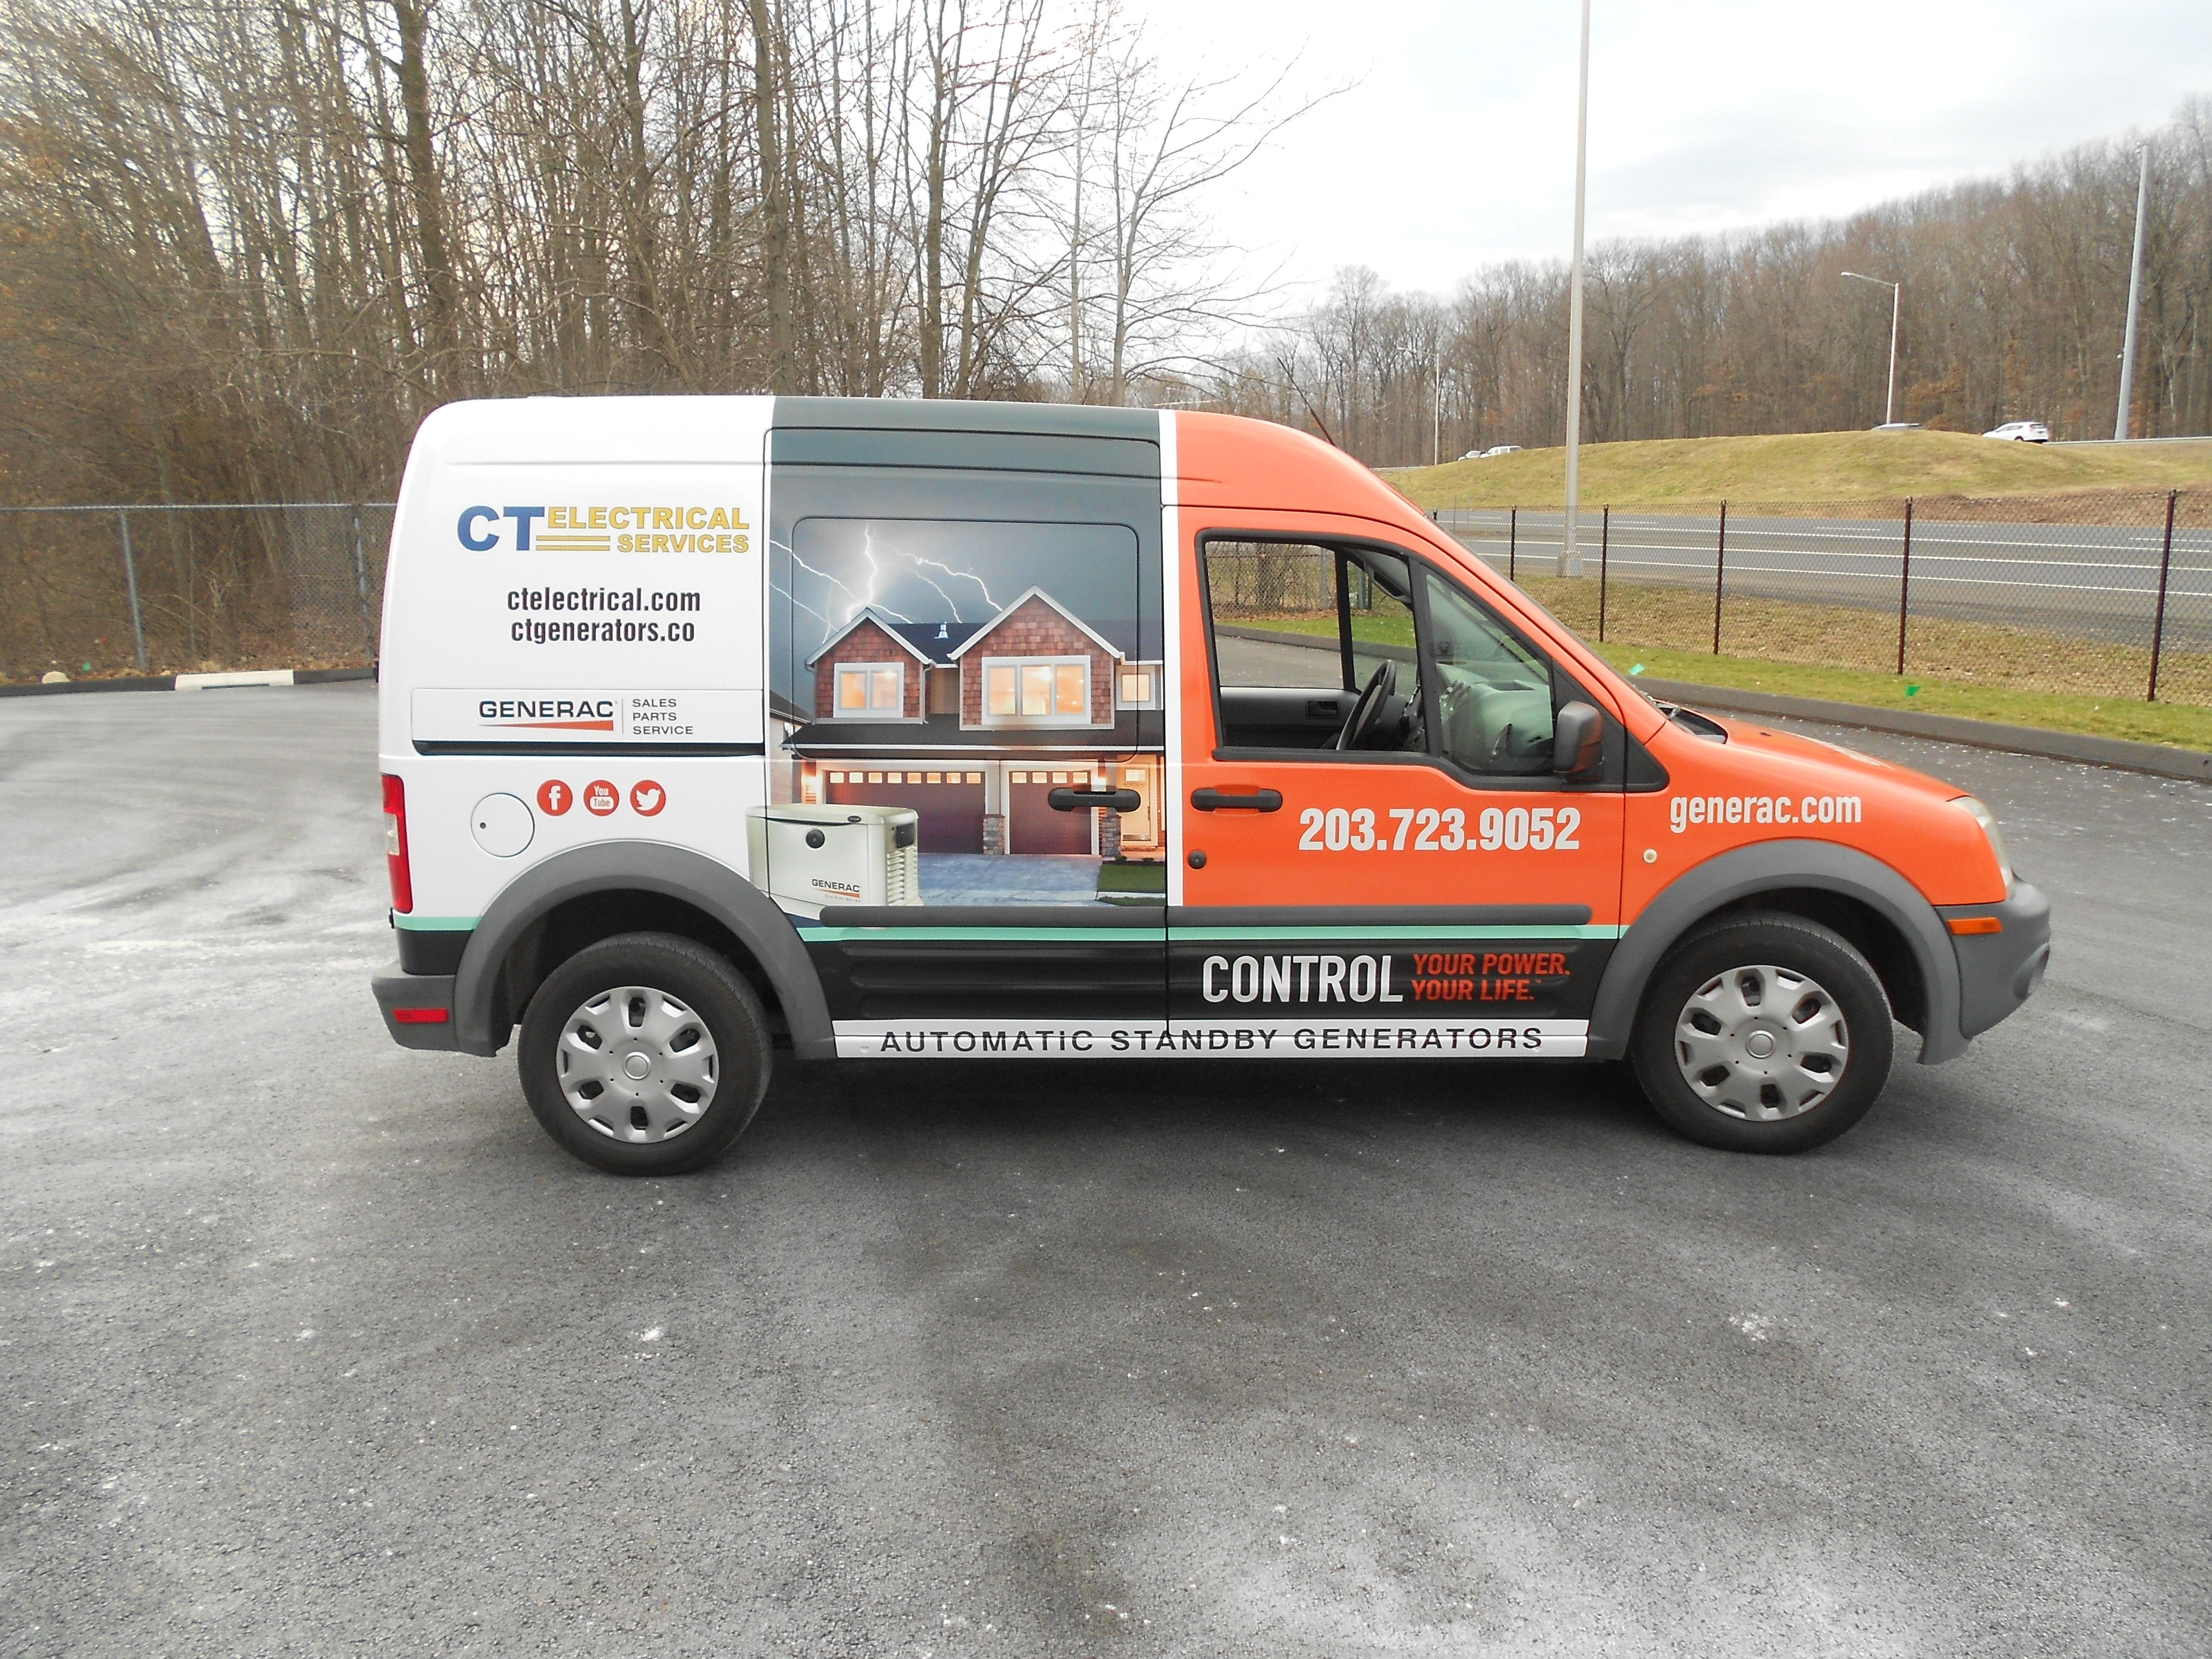 Ct Electrical Graphic Wrap Done By Sign Pro Inc Sign Pro Car